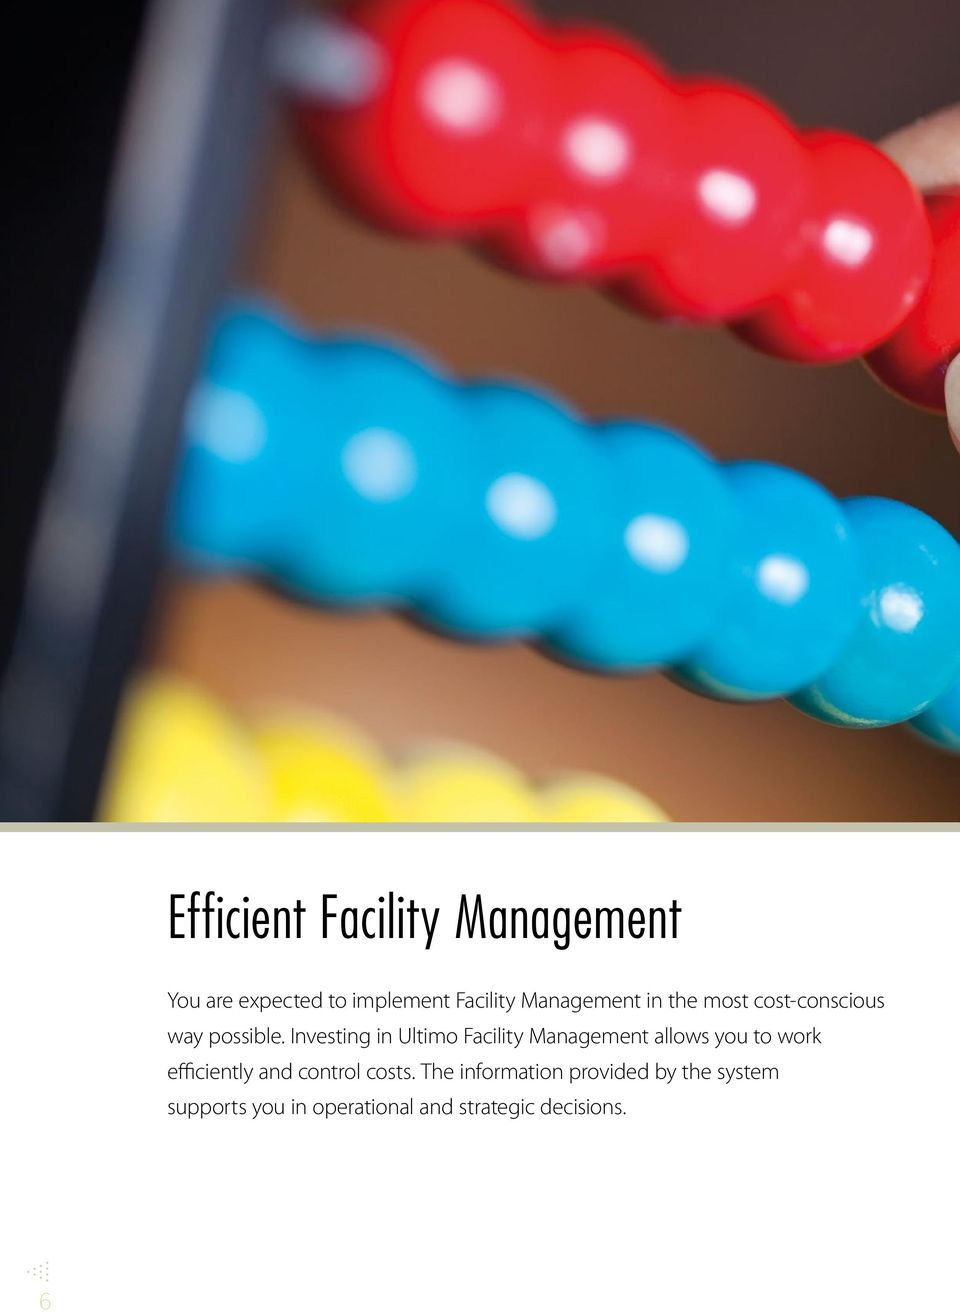 Investing in Ultimo Facility Management allows you to work efficiently and